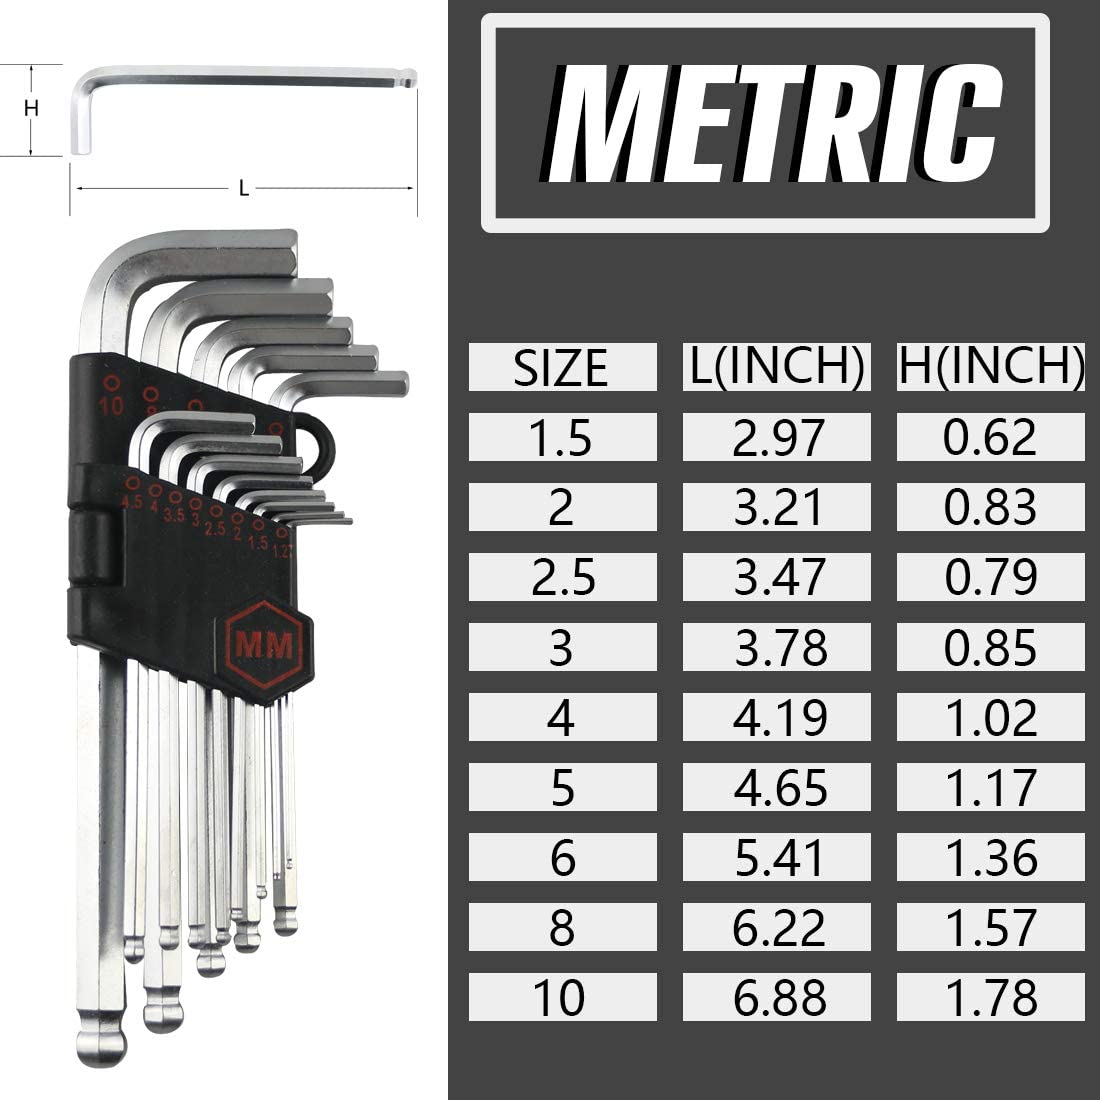 SAE//Metric//Star Torx Long Arm Ball End Hex Key Set Tools Strength Helping T Handle Zero Tools 36-Pieces Hex Key Allen Wrench Set CR-V Steel Industrial Grade Allen Wrench Set